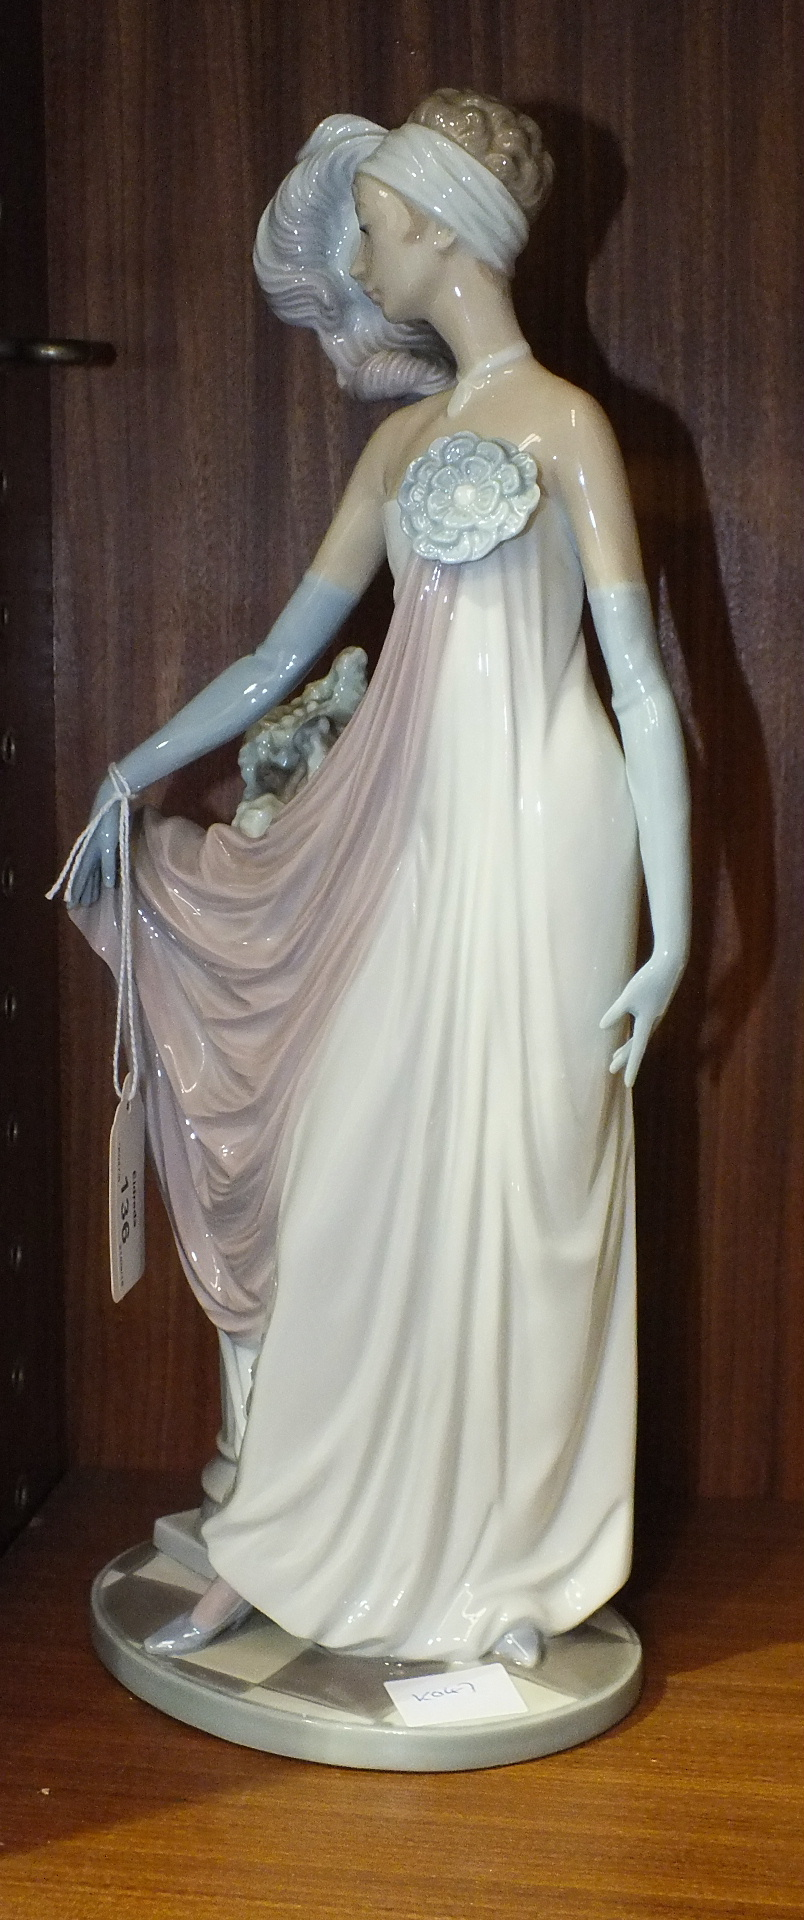 Lot 136 - A Lladro figure of a young woman with plumed head dress and evening gown standing by a pedestal of